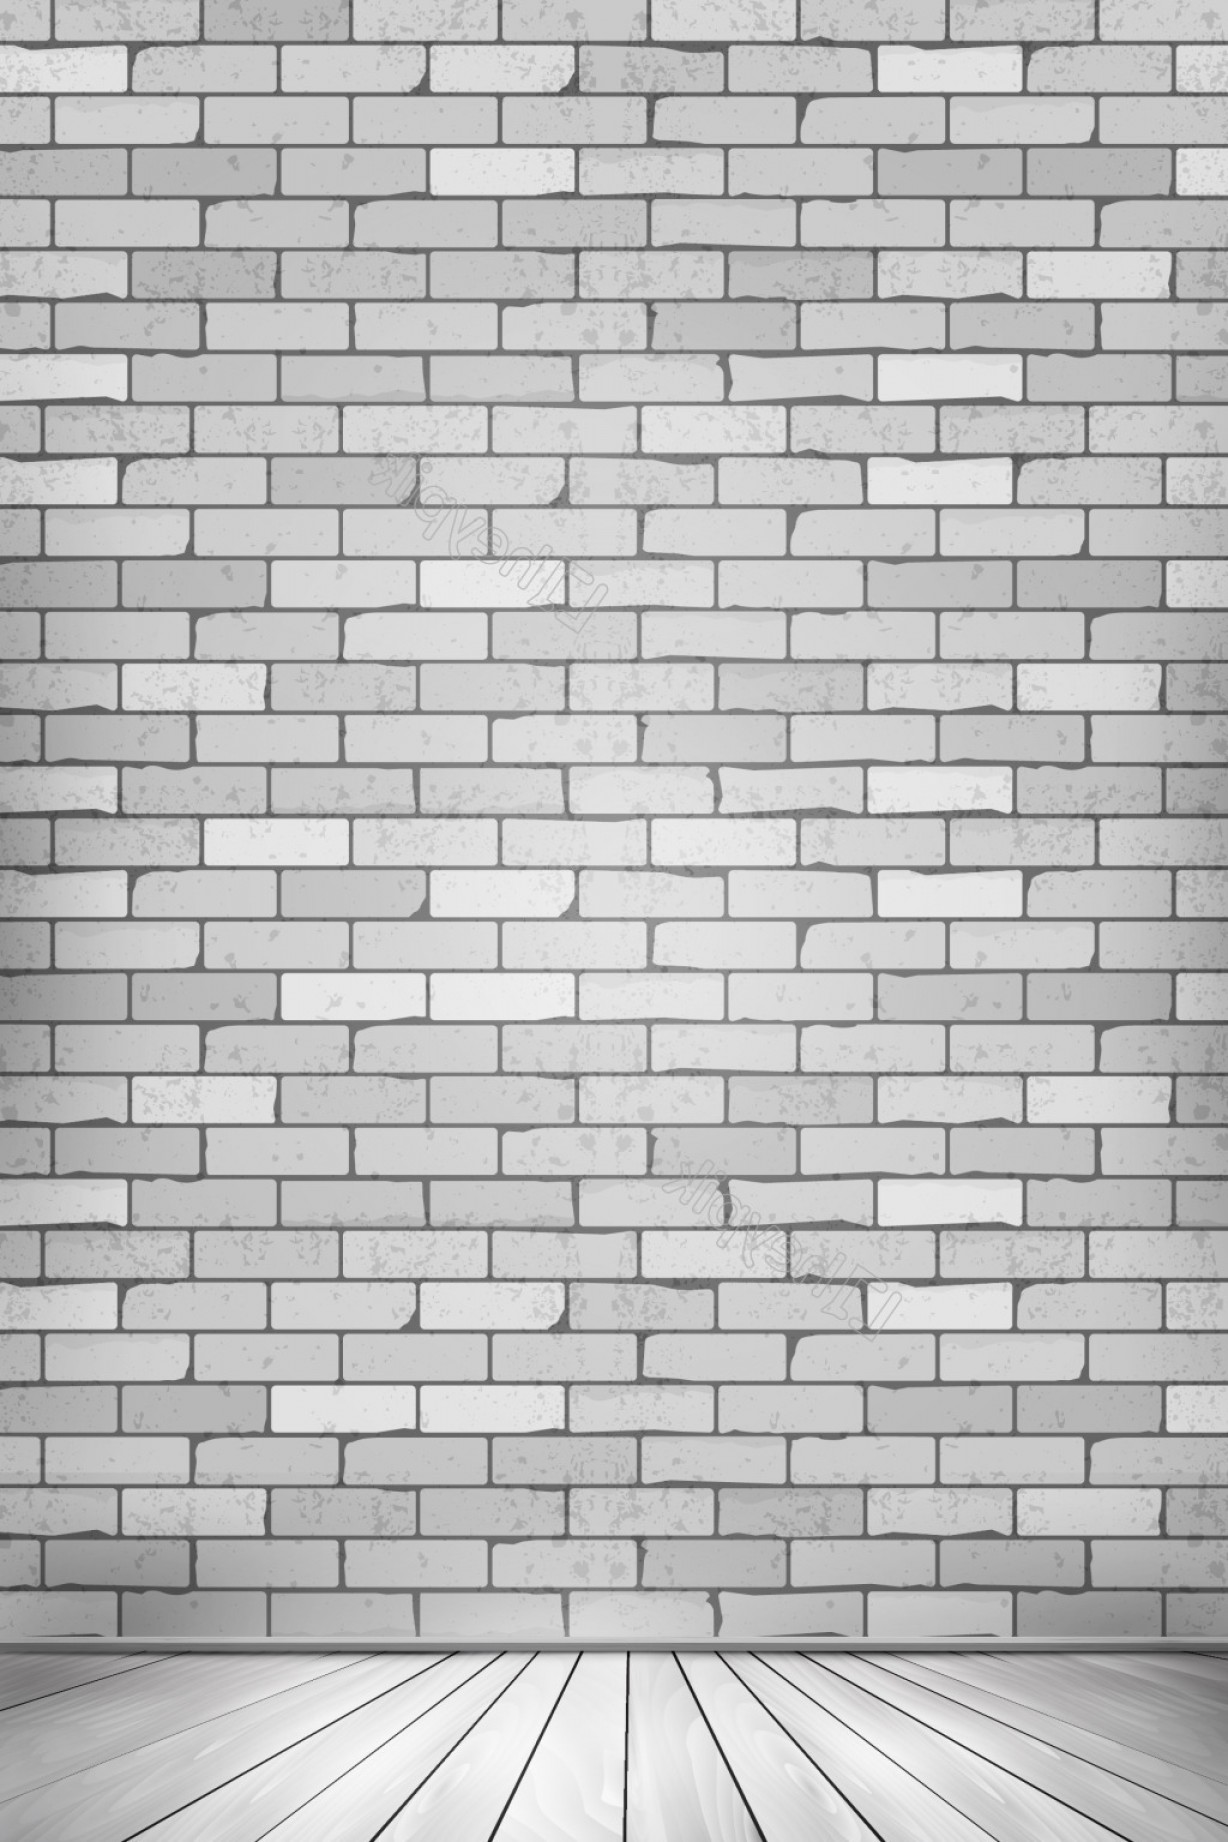 Brick Vector Ai File: Vector Dimensional Space Wall Floor Background